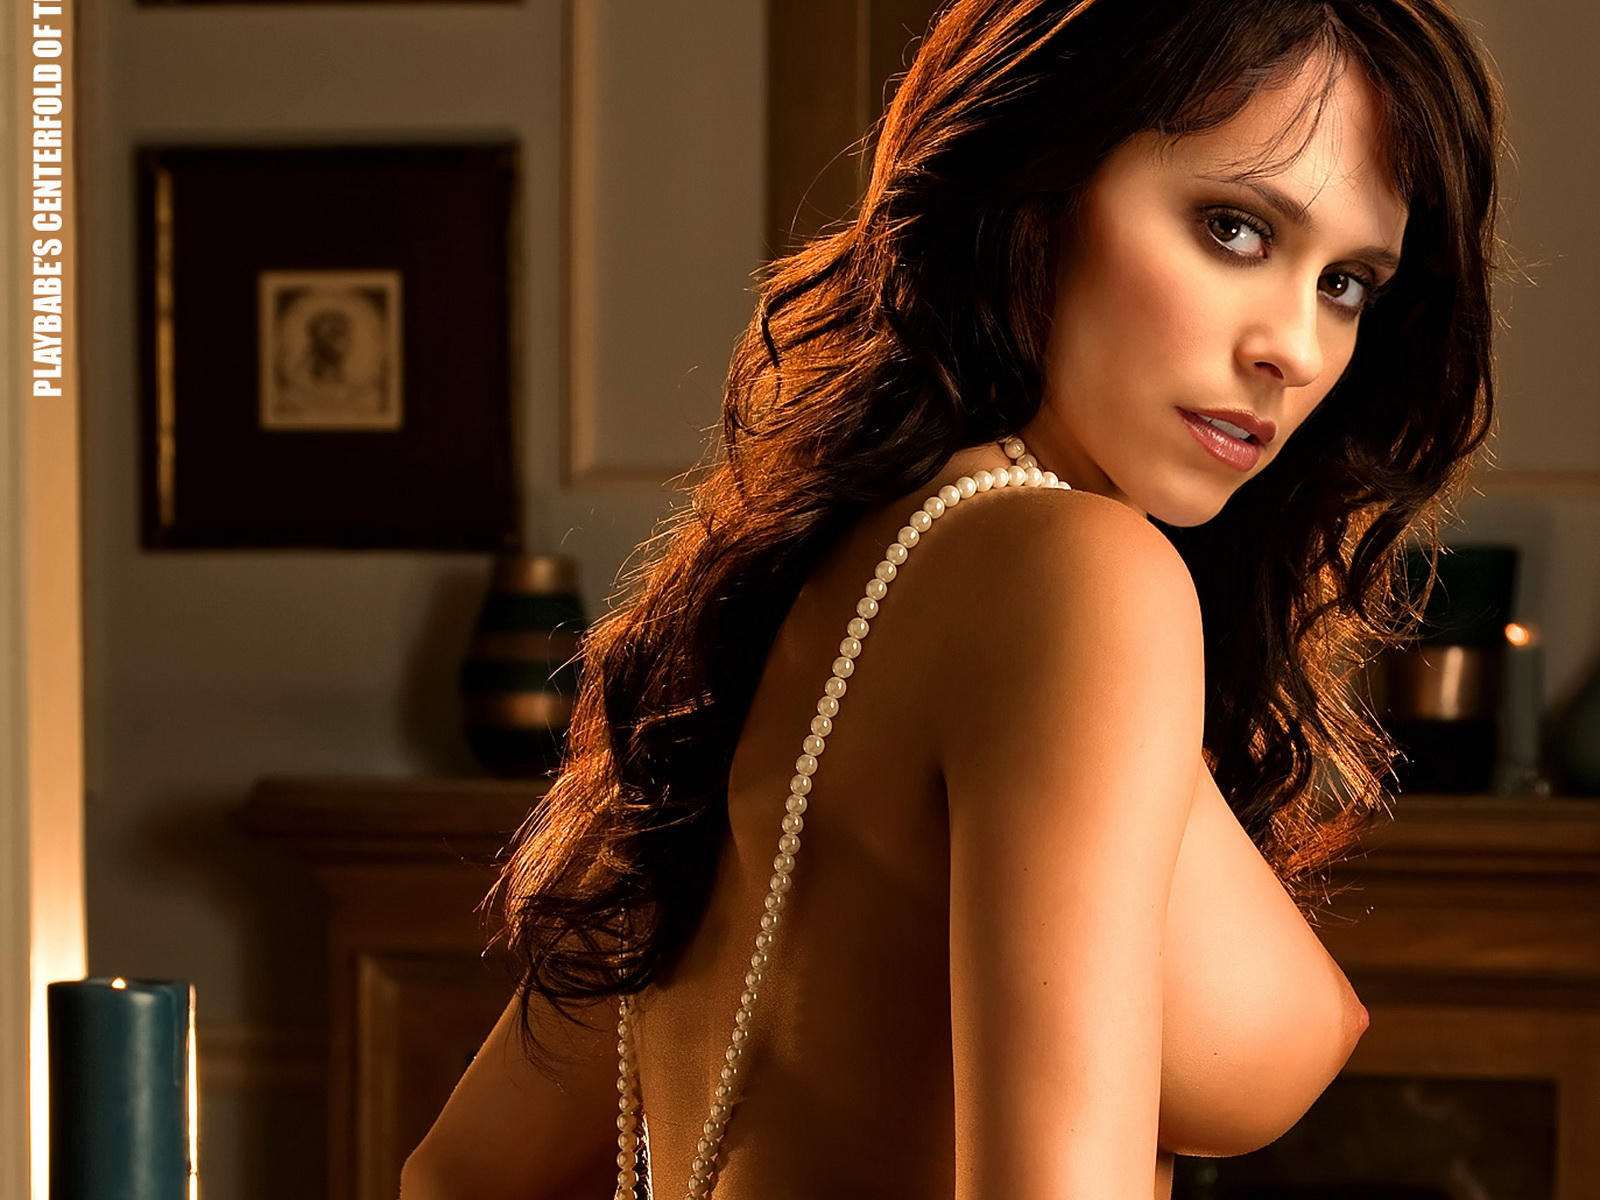 jennifer love playboy: